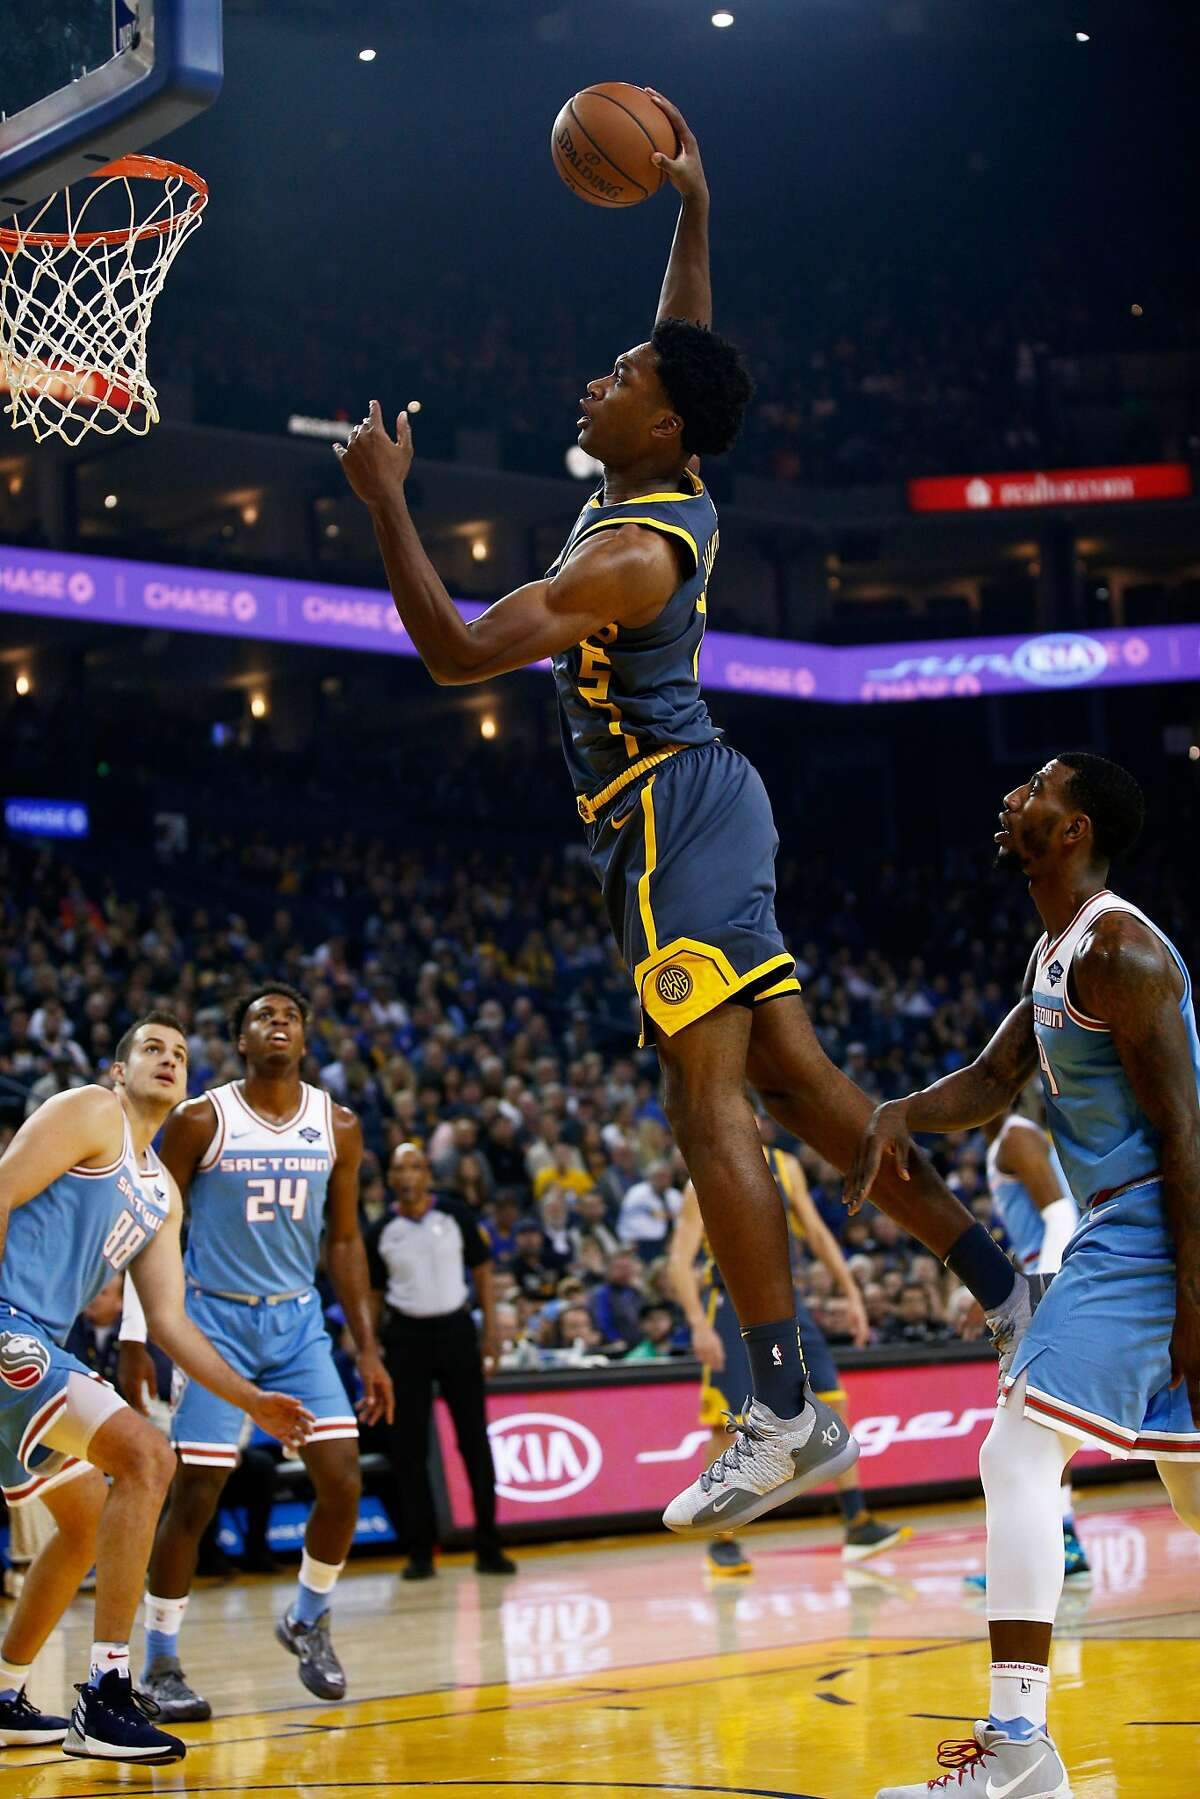 Golden State Warriors center Damian Jones (15) dunks in the first half of an NBA game at Oracle Arena on Saturday, Nov. 24, 2018, in Oakland, Calif.